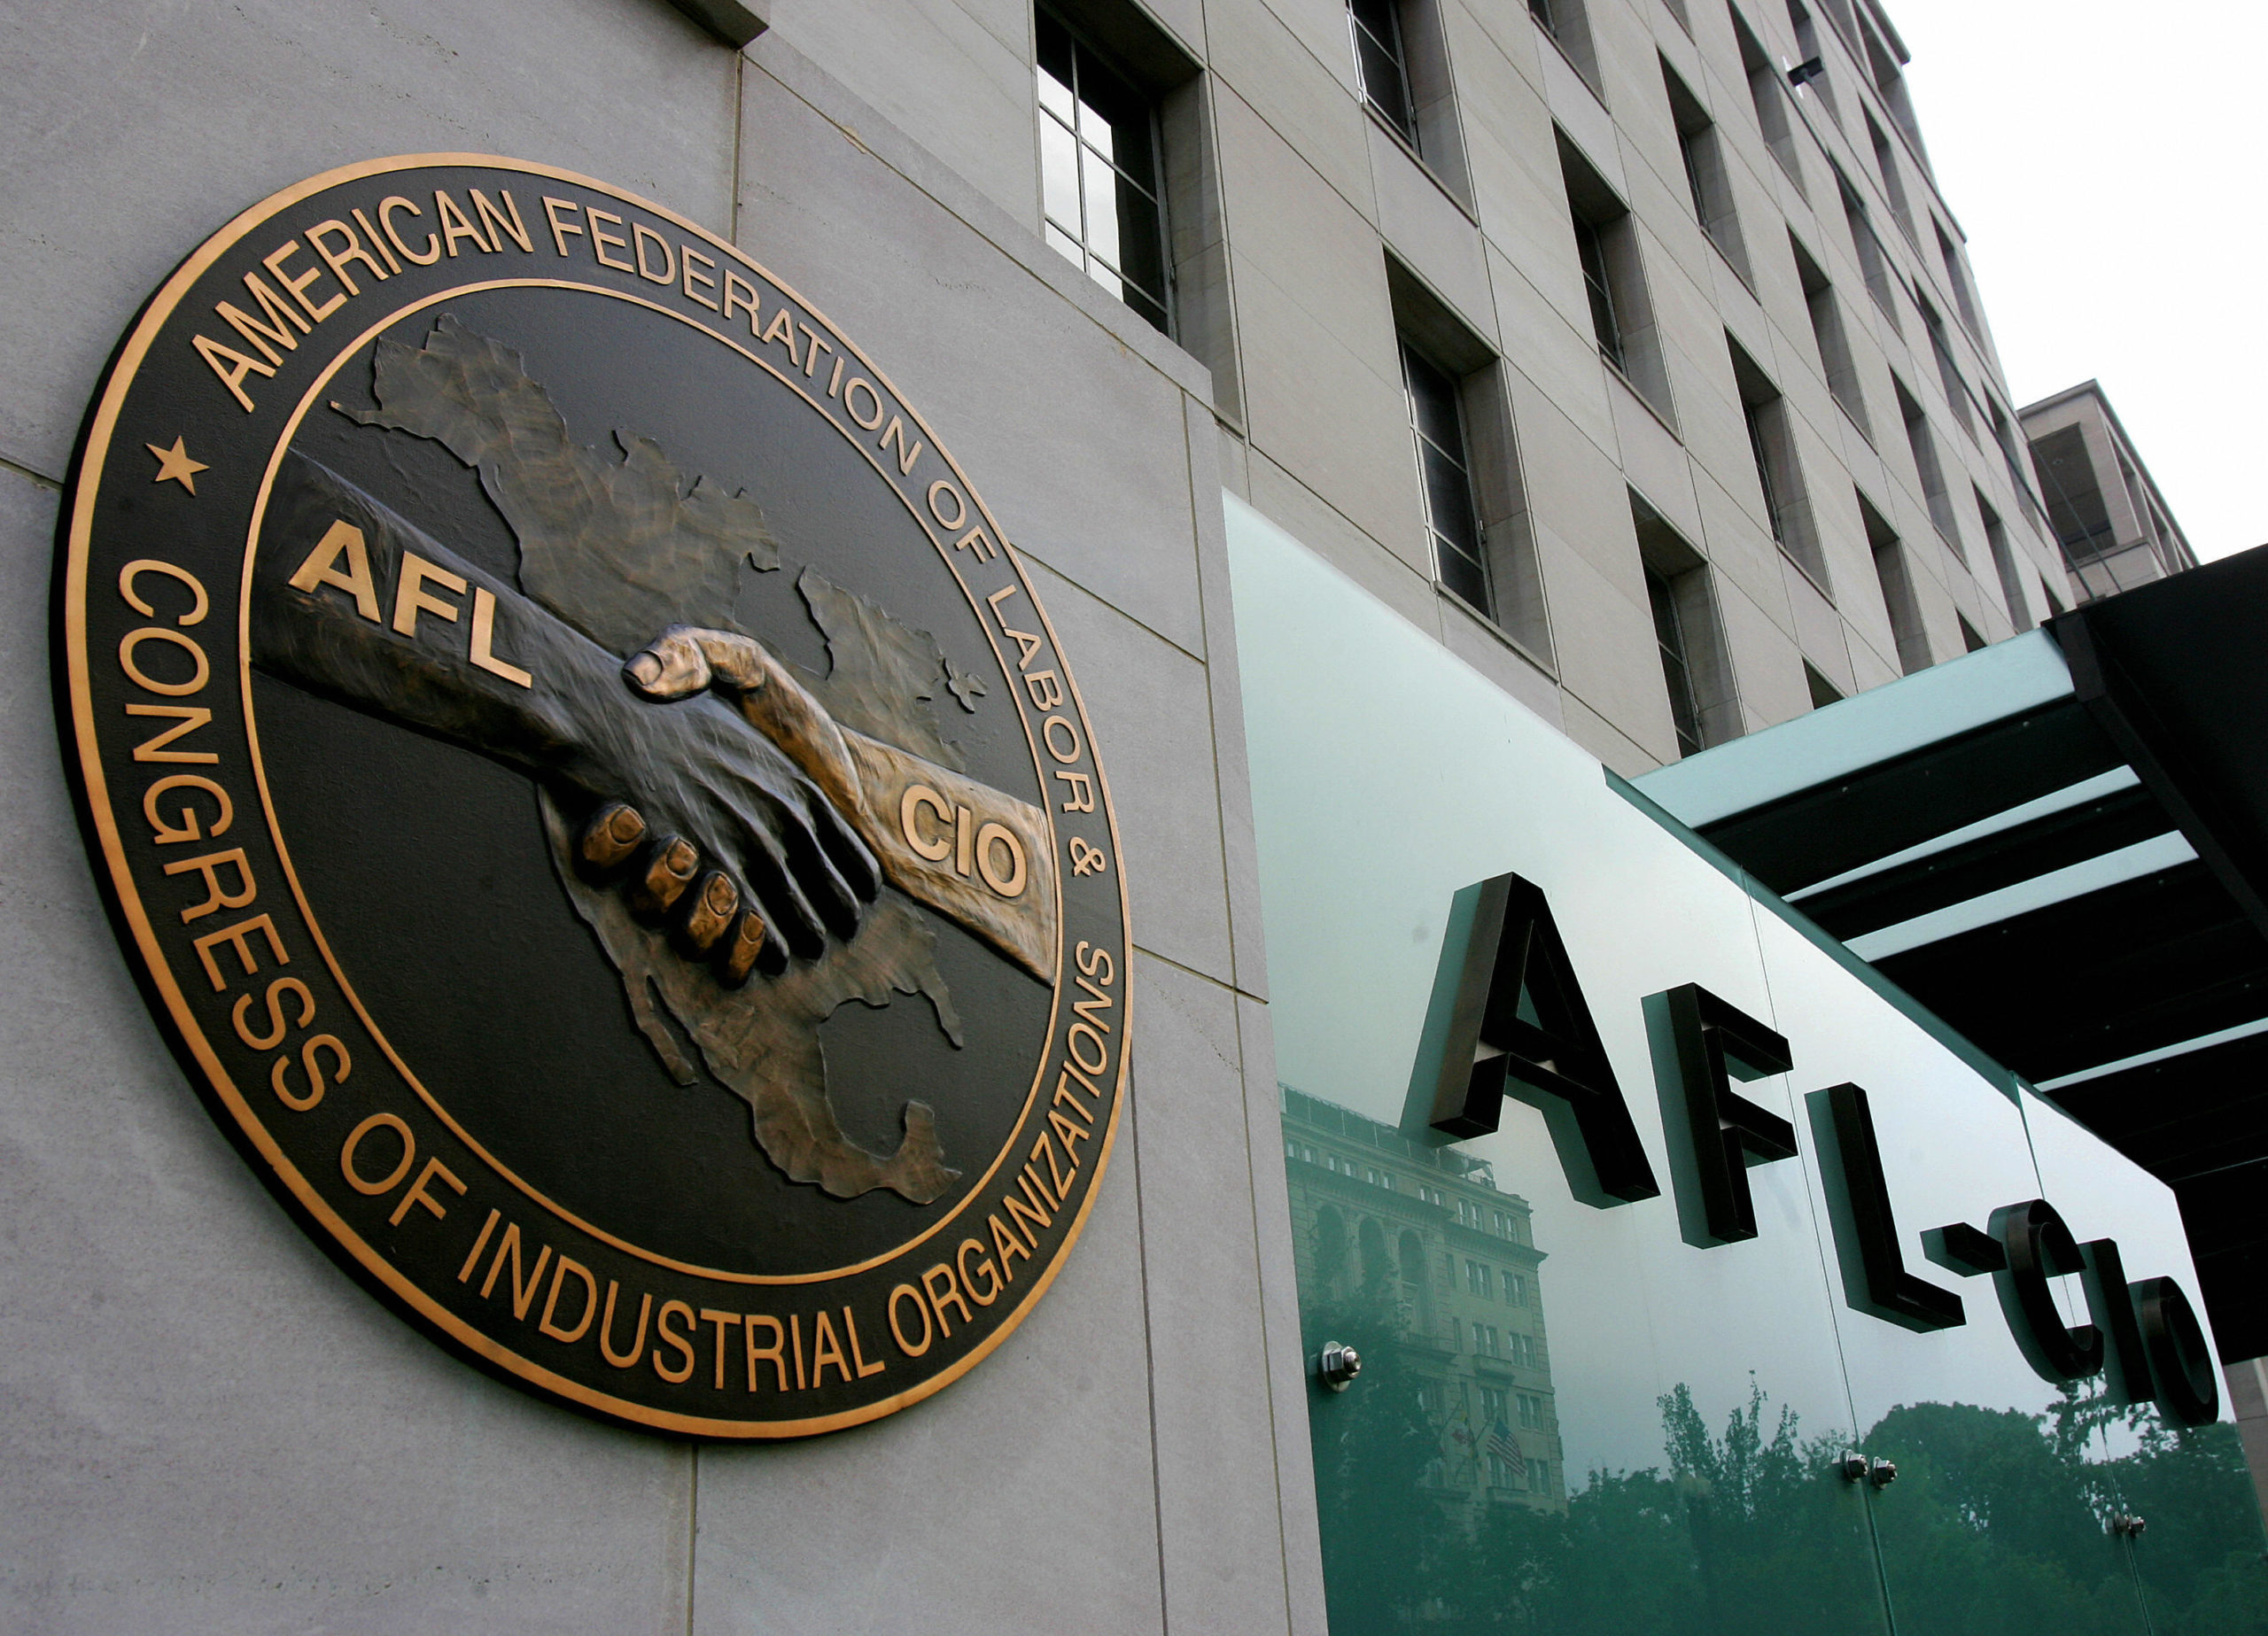 The AFL-CIO headquarters is shown in Washington, D.C. (Paul J. Richards/Getty Images)